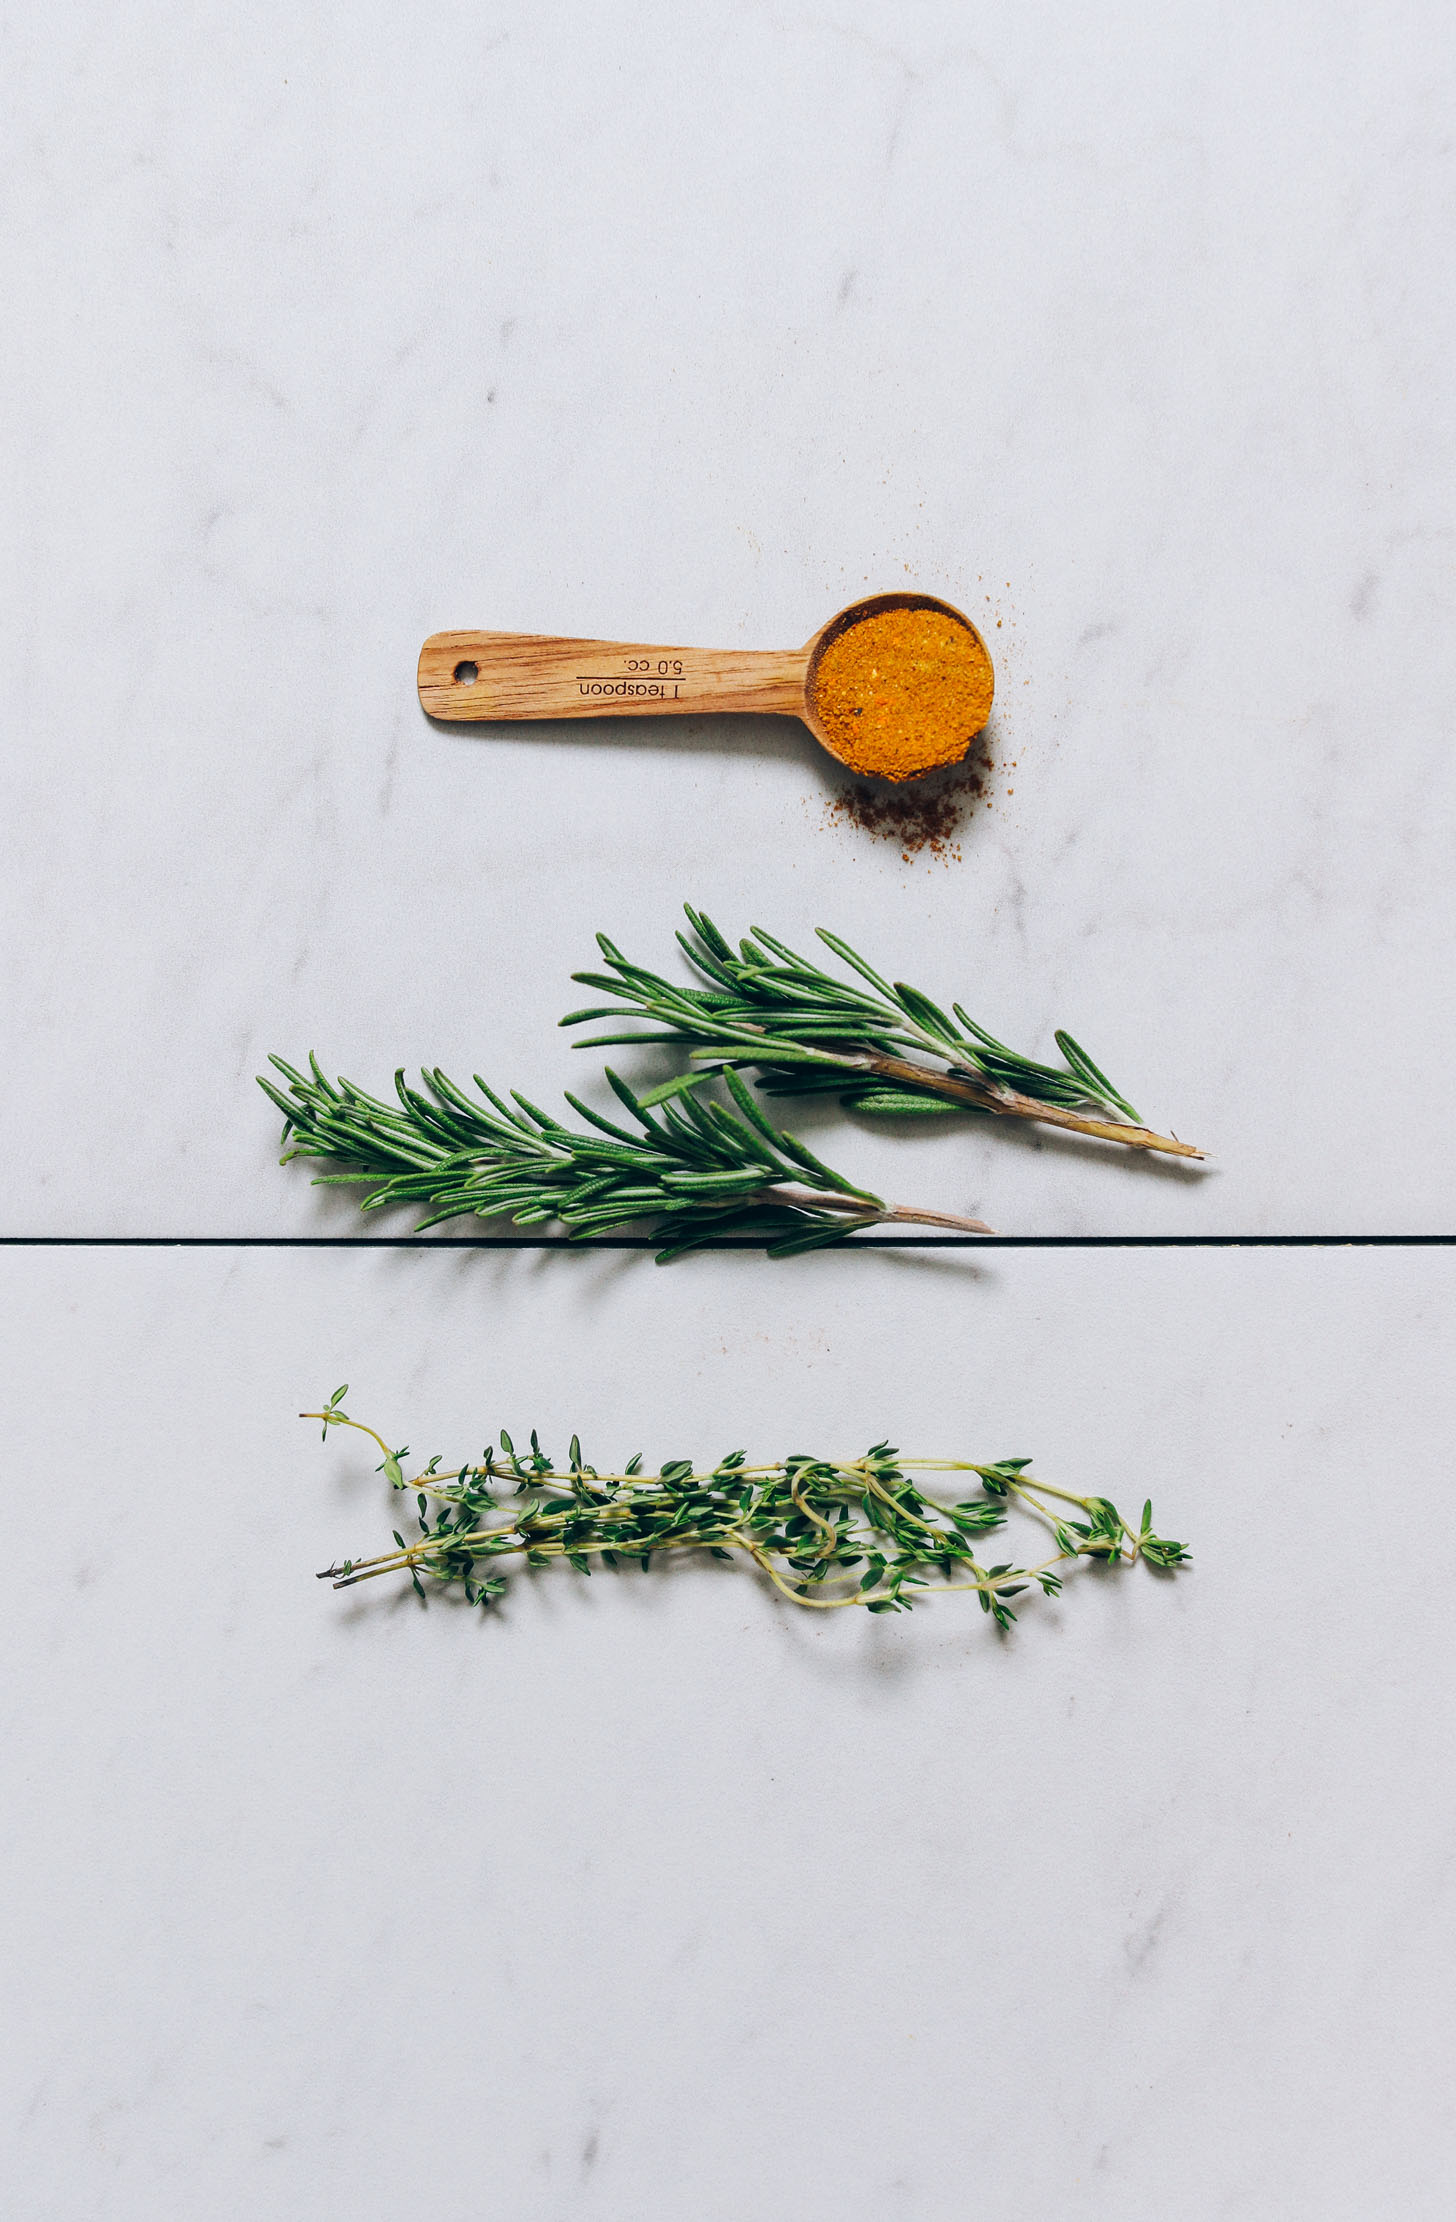 Curry powder, rosemary, and thyme